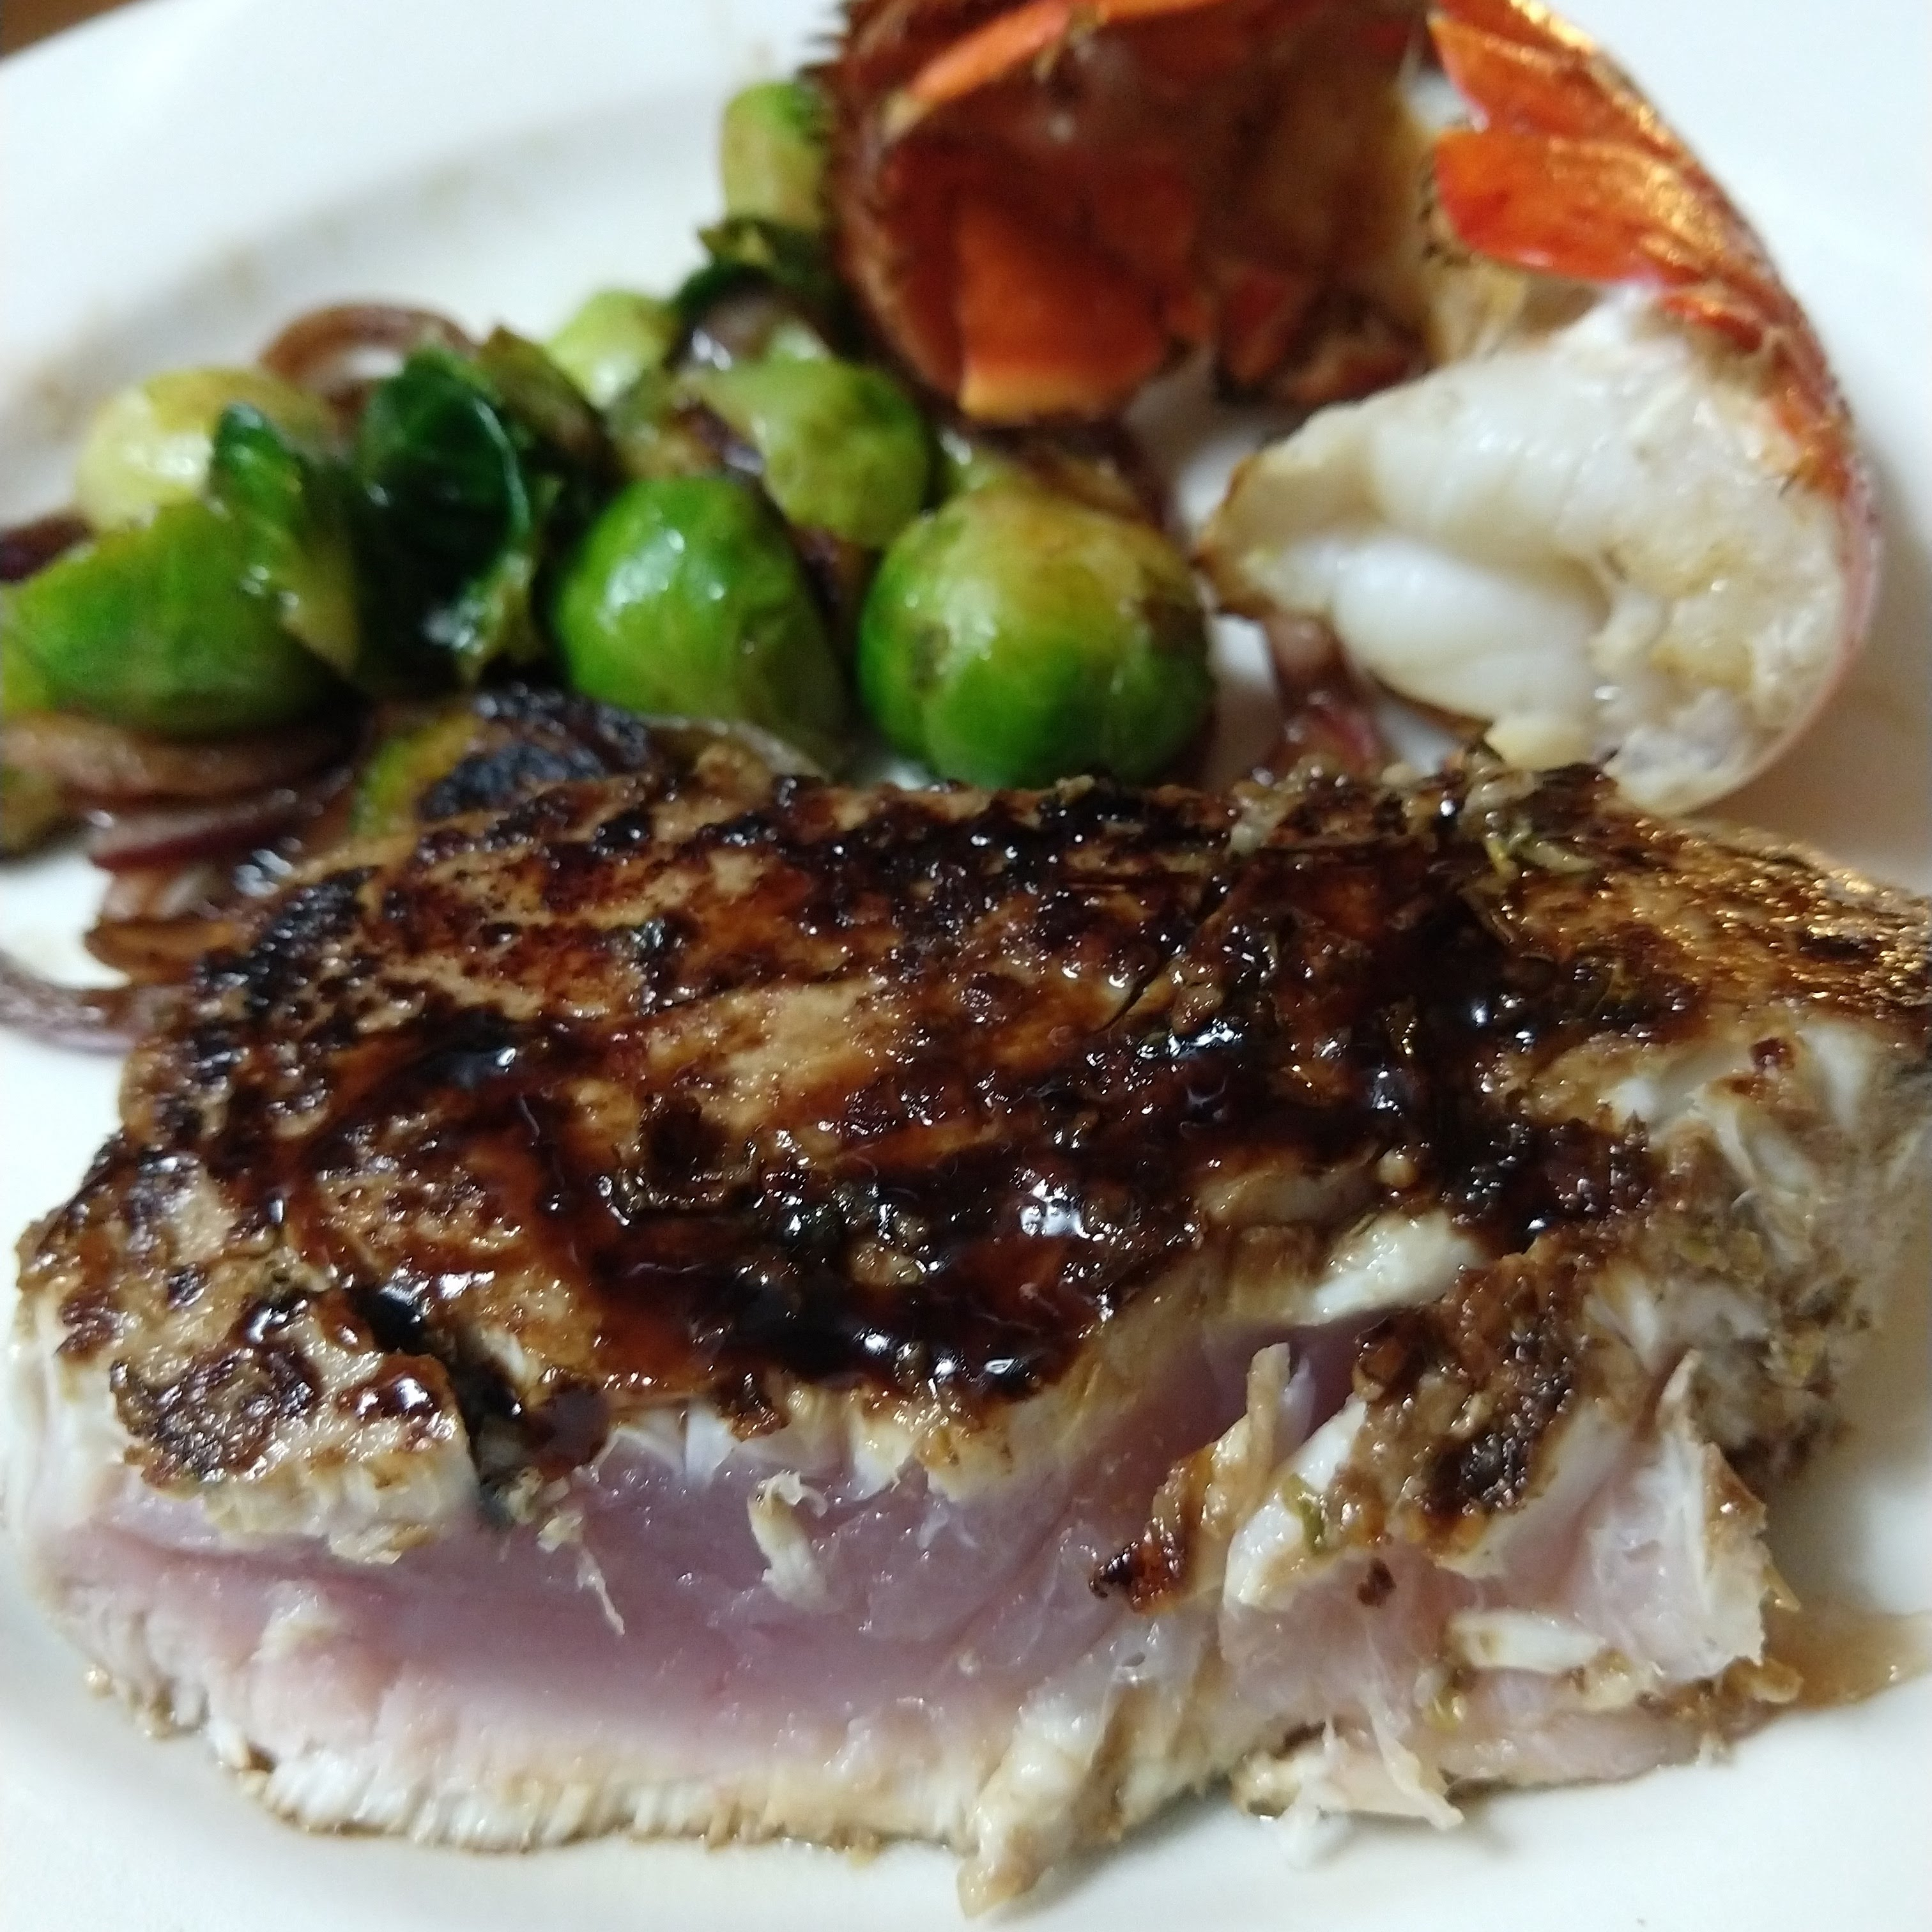 Ahi tuna with brussels sprouts and lobster